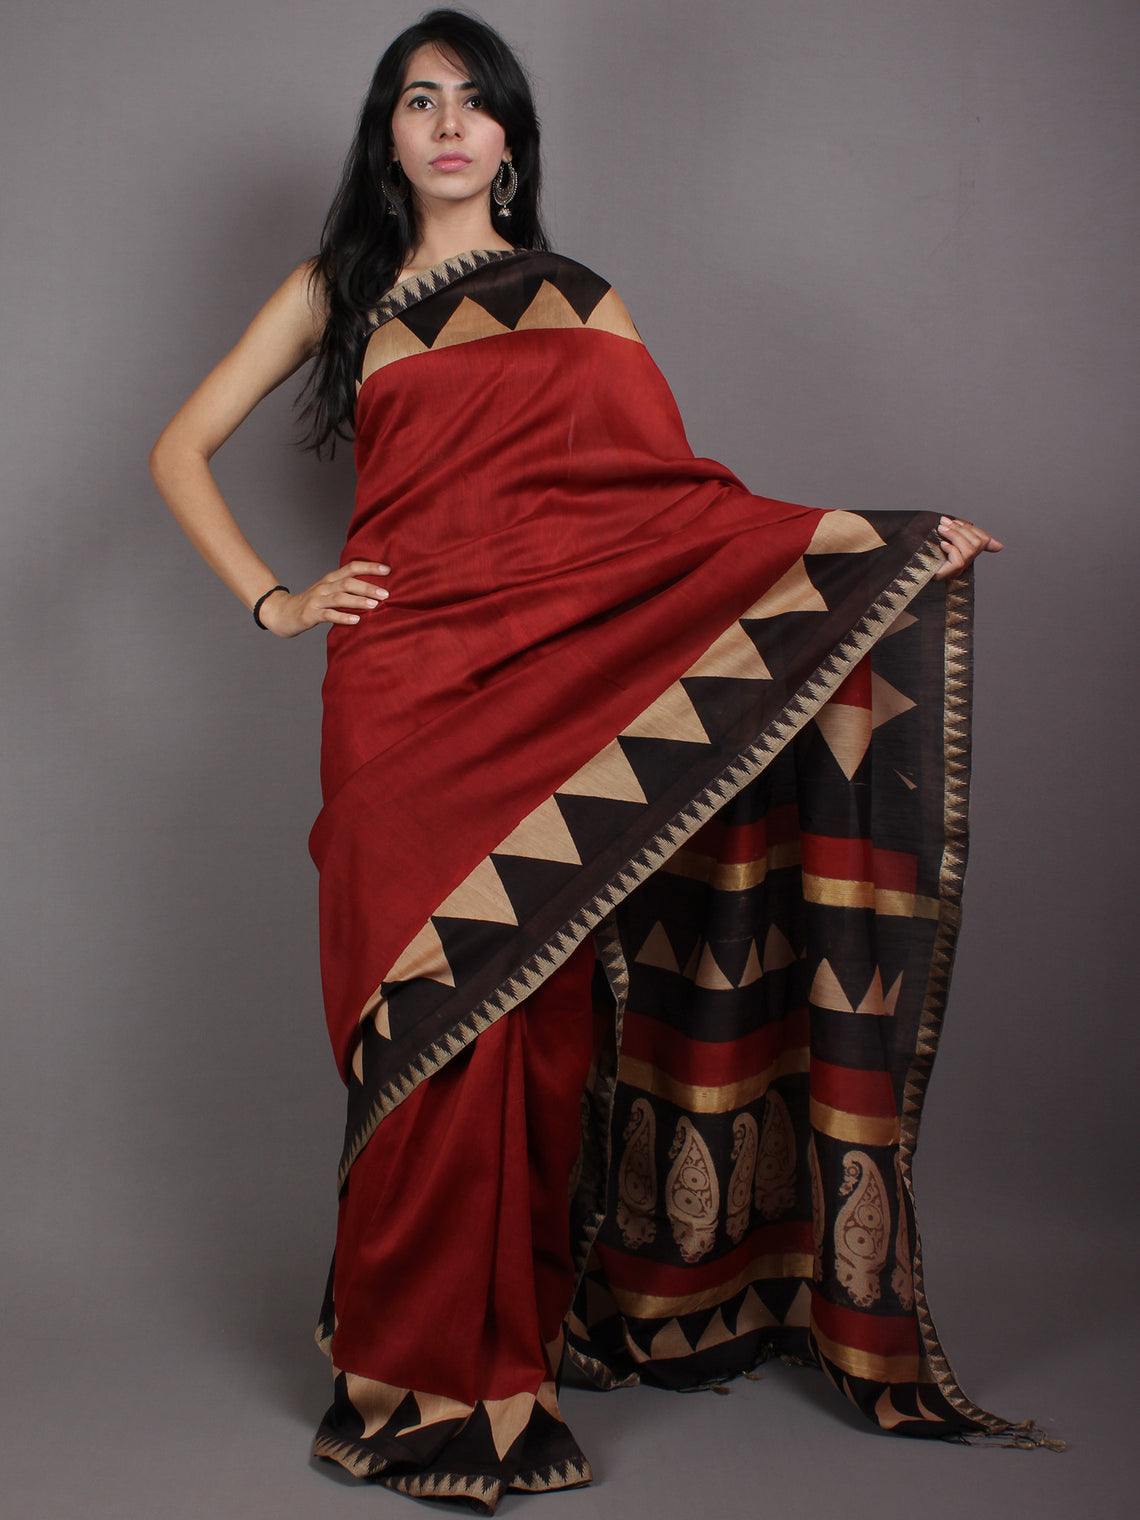 Red Beige Black Hand Block Printed in Natural Vegetable Colors Chanderi Saree With Geecha Border - S03170520